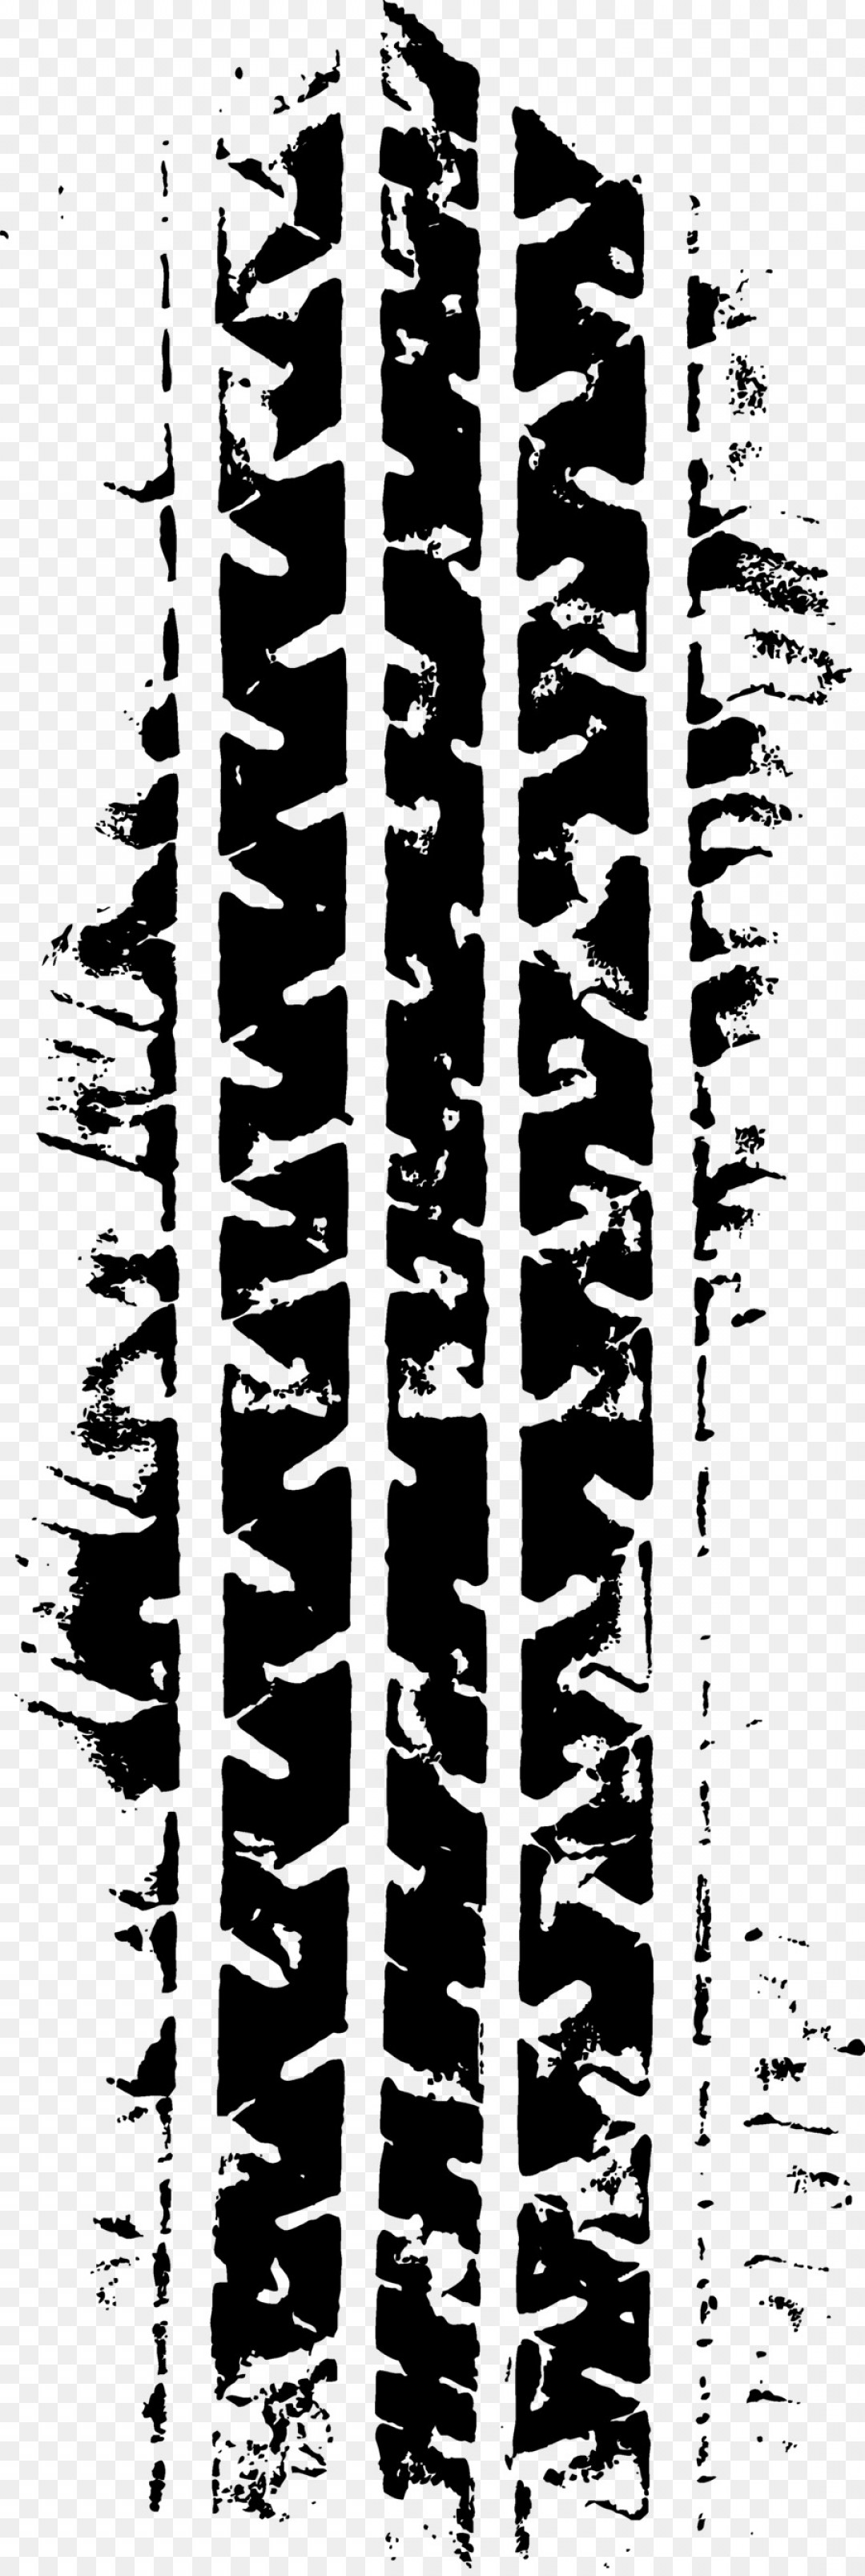 Tire Tread Png Free Tire Tread Png Transparent Images 39997 Pngio